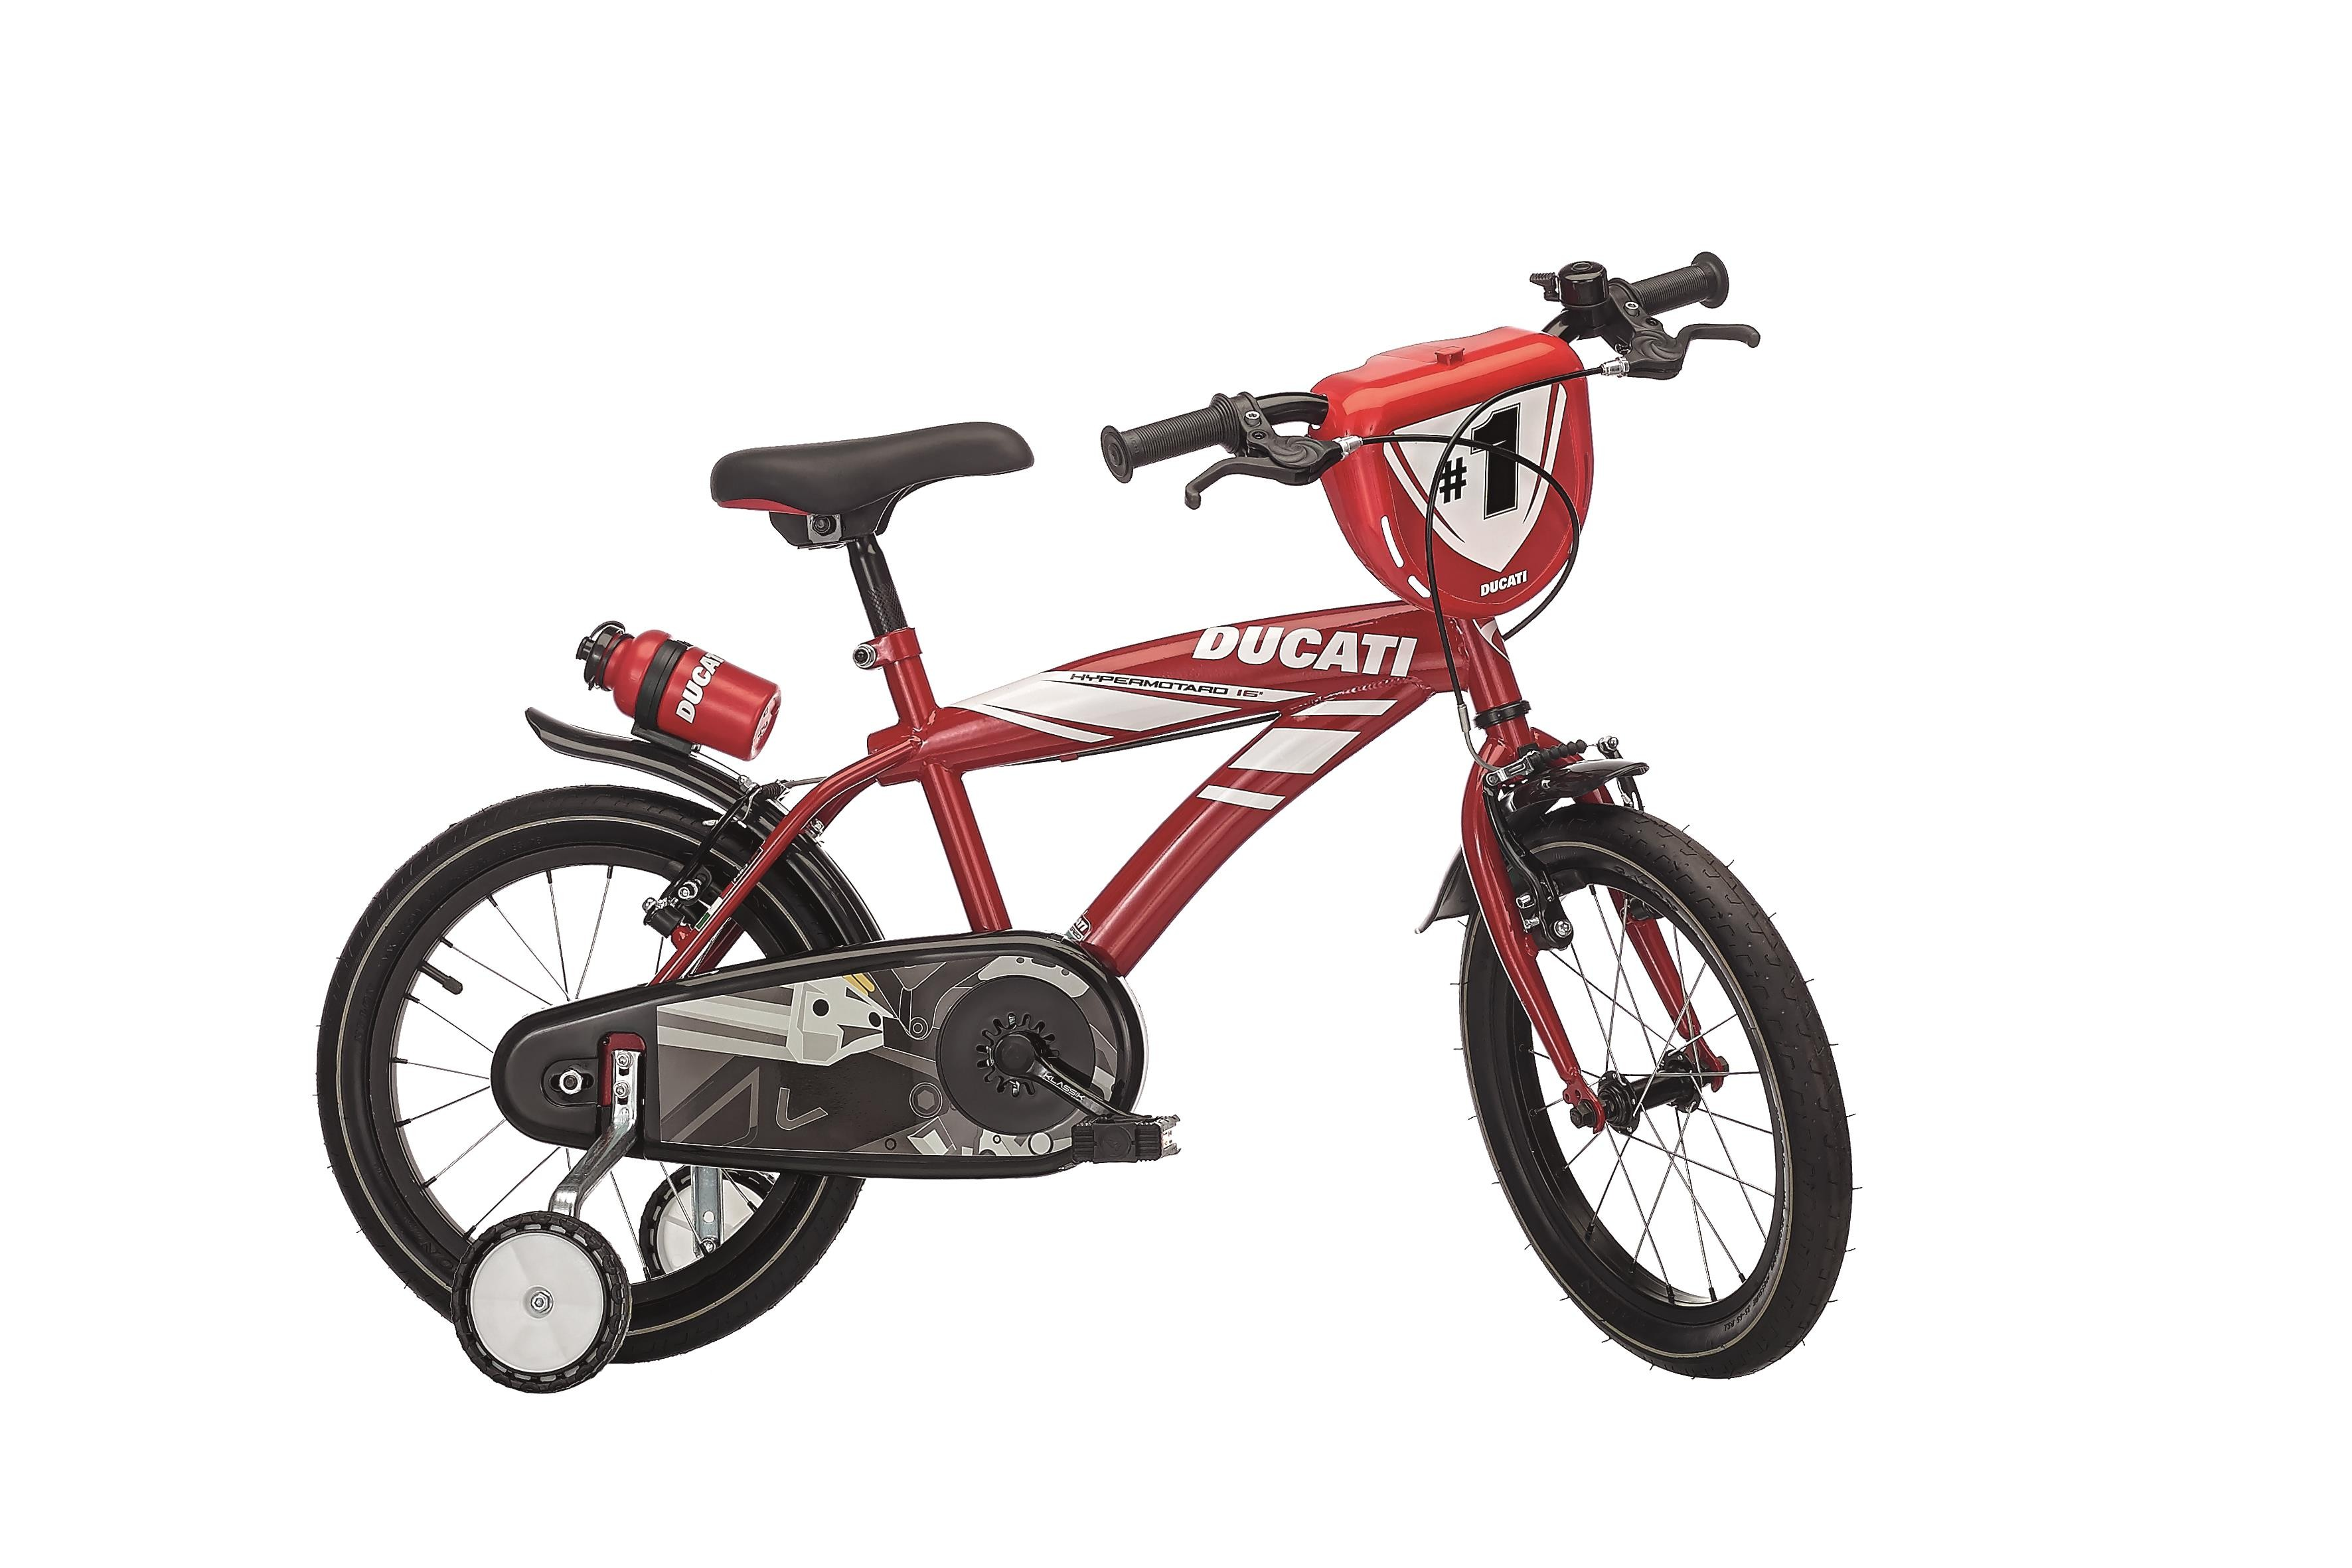 1cacb8f3194 New Range of Ducati Bicycles Available - autoevolution